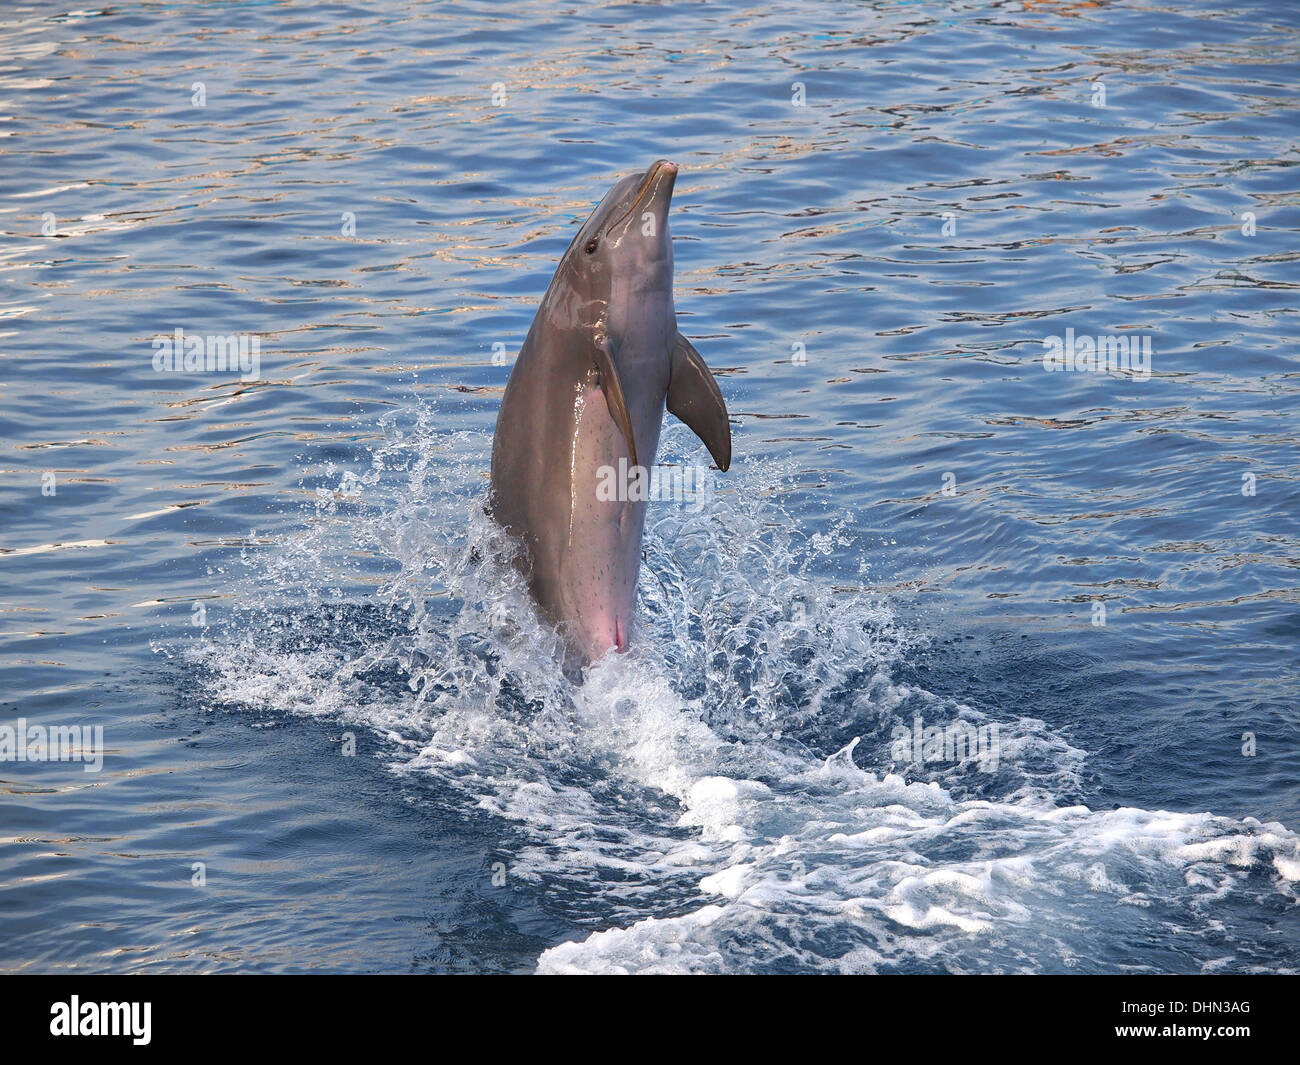 dolphin standinh on the tail  - Stock Image